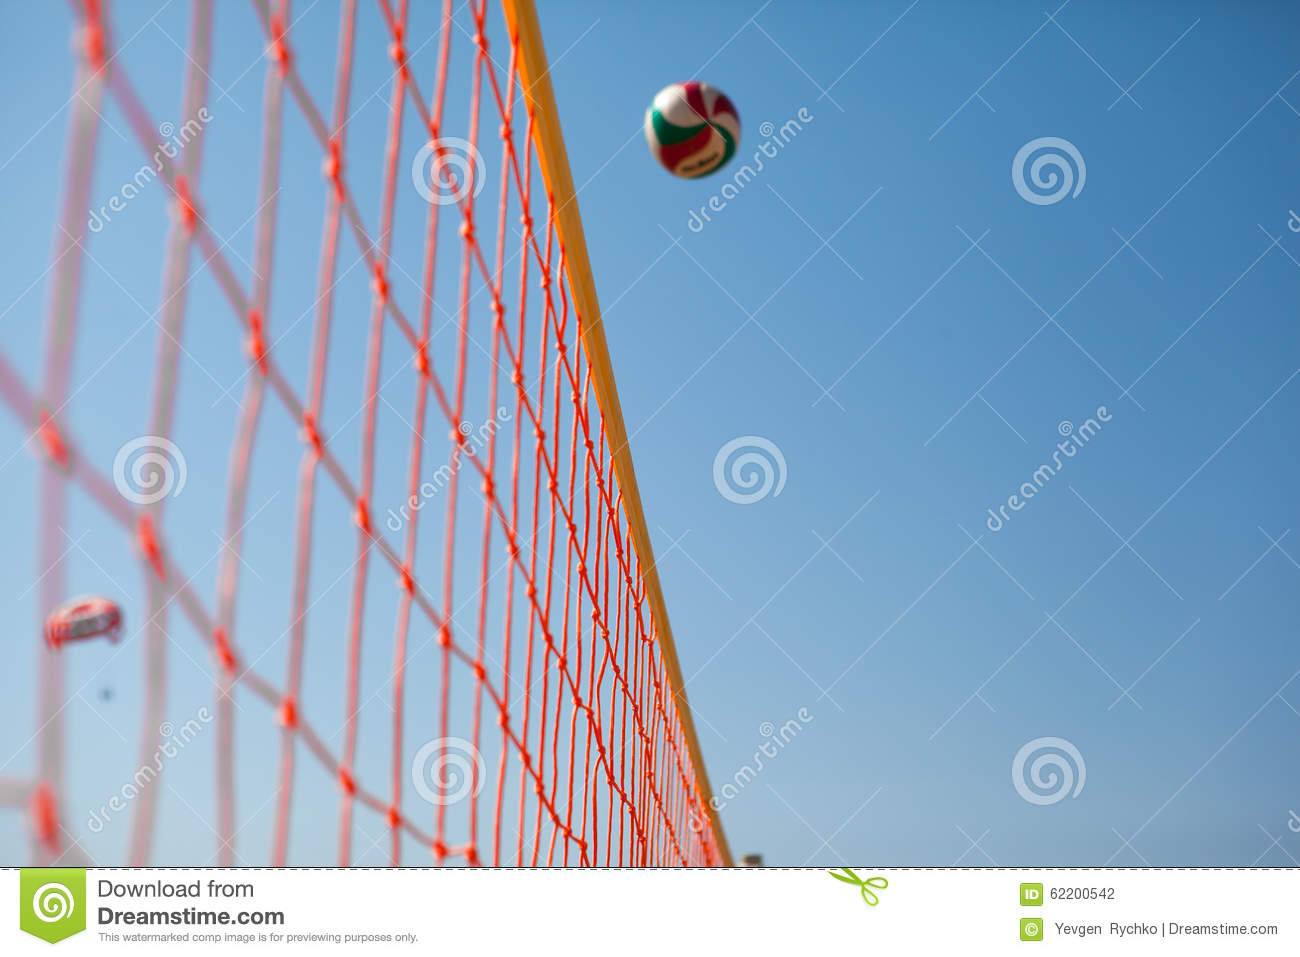 Tennis ball serve over the net stock image image of racket.